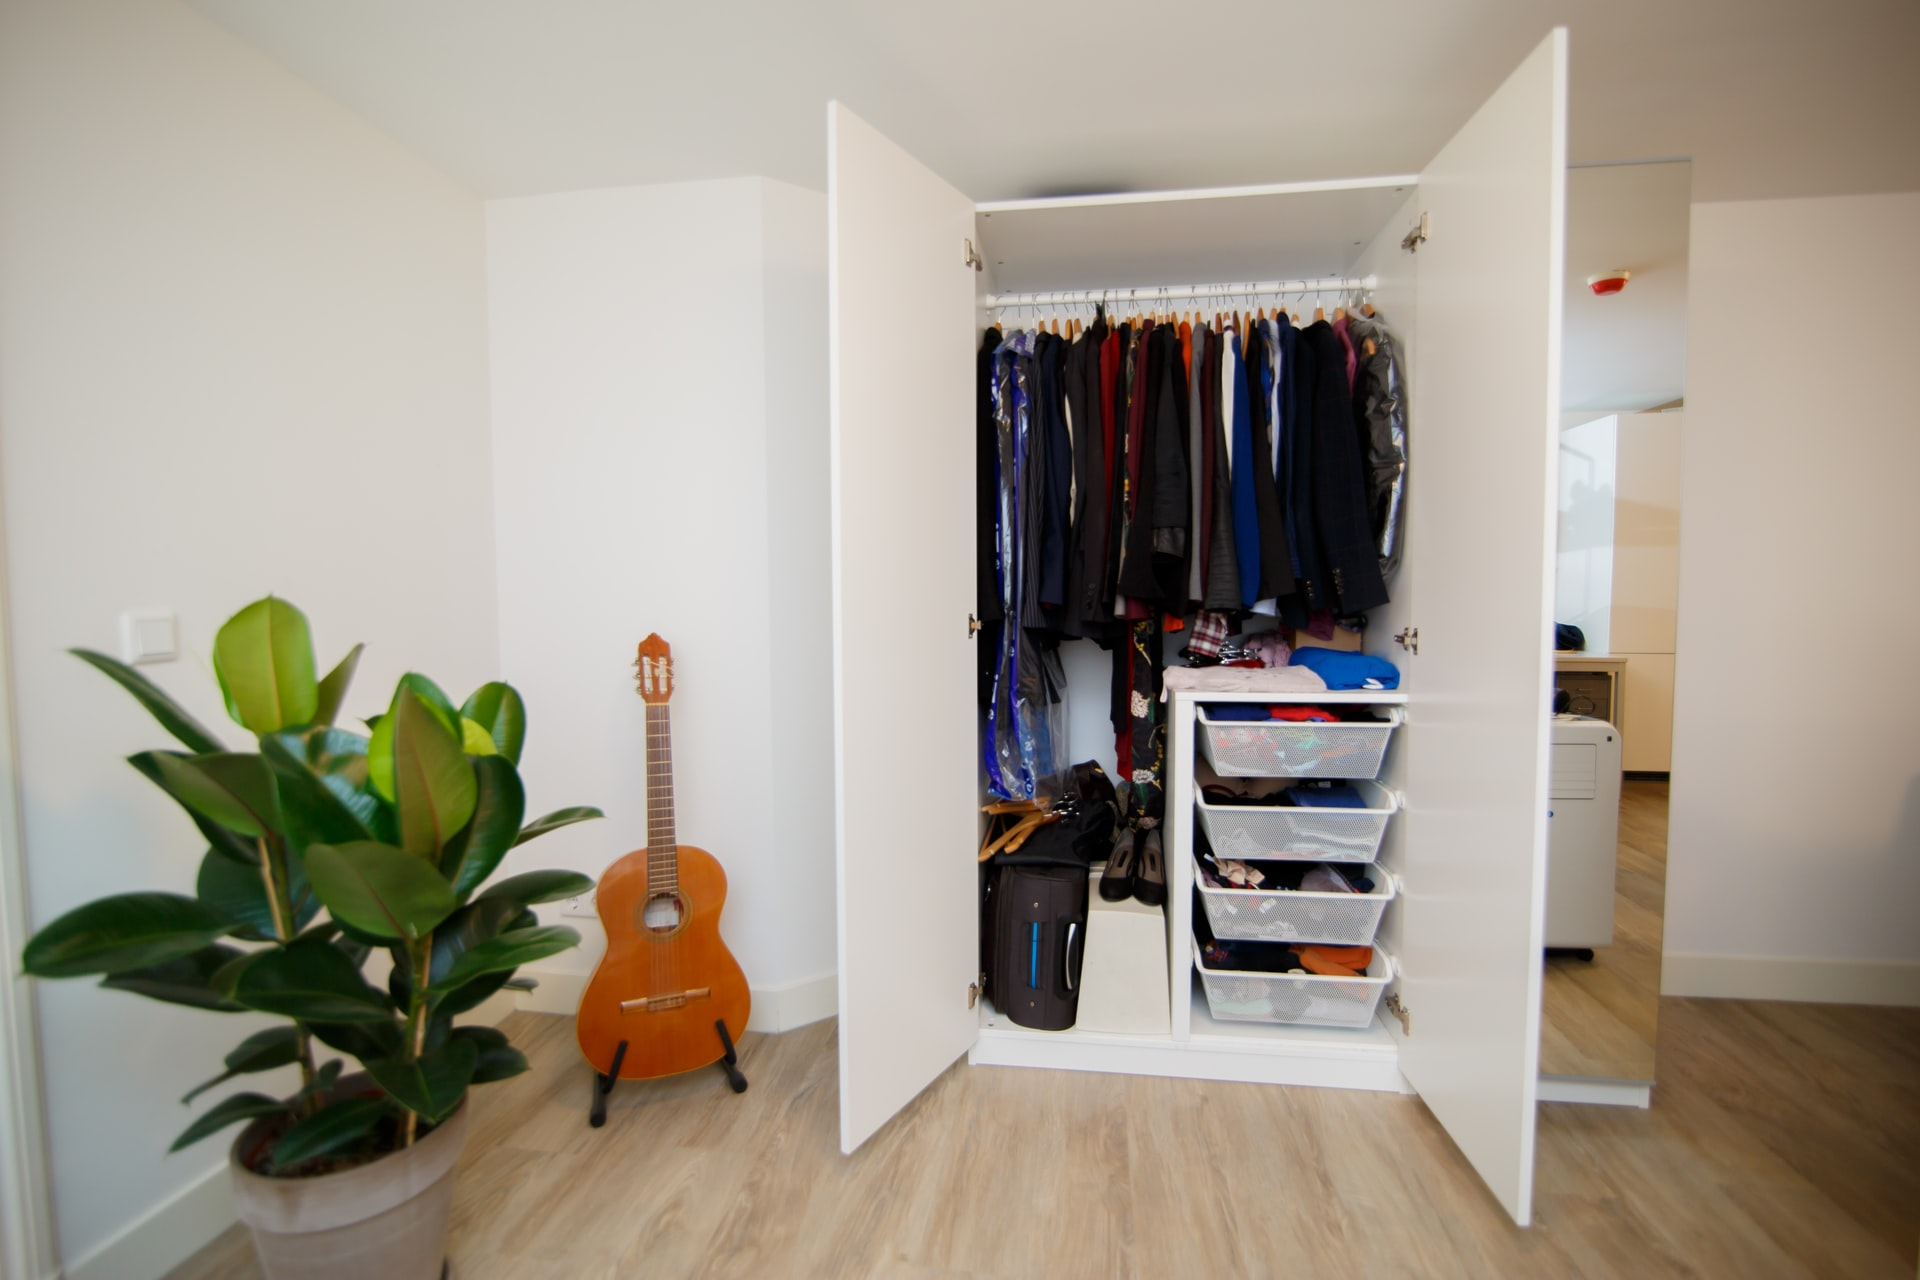 Clean Out Your Closet and Transform Your Wardrobe to Change Your Life